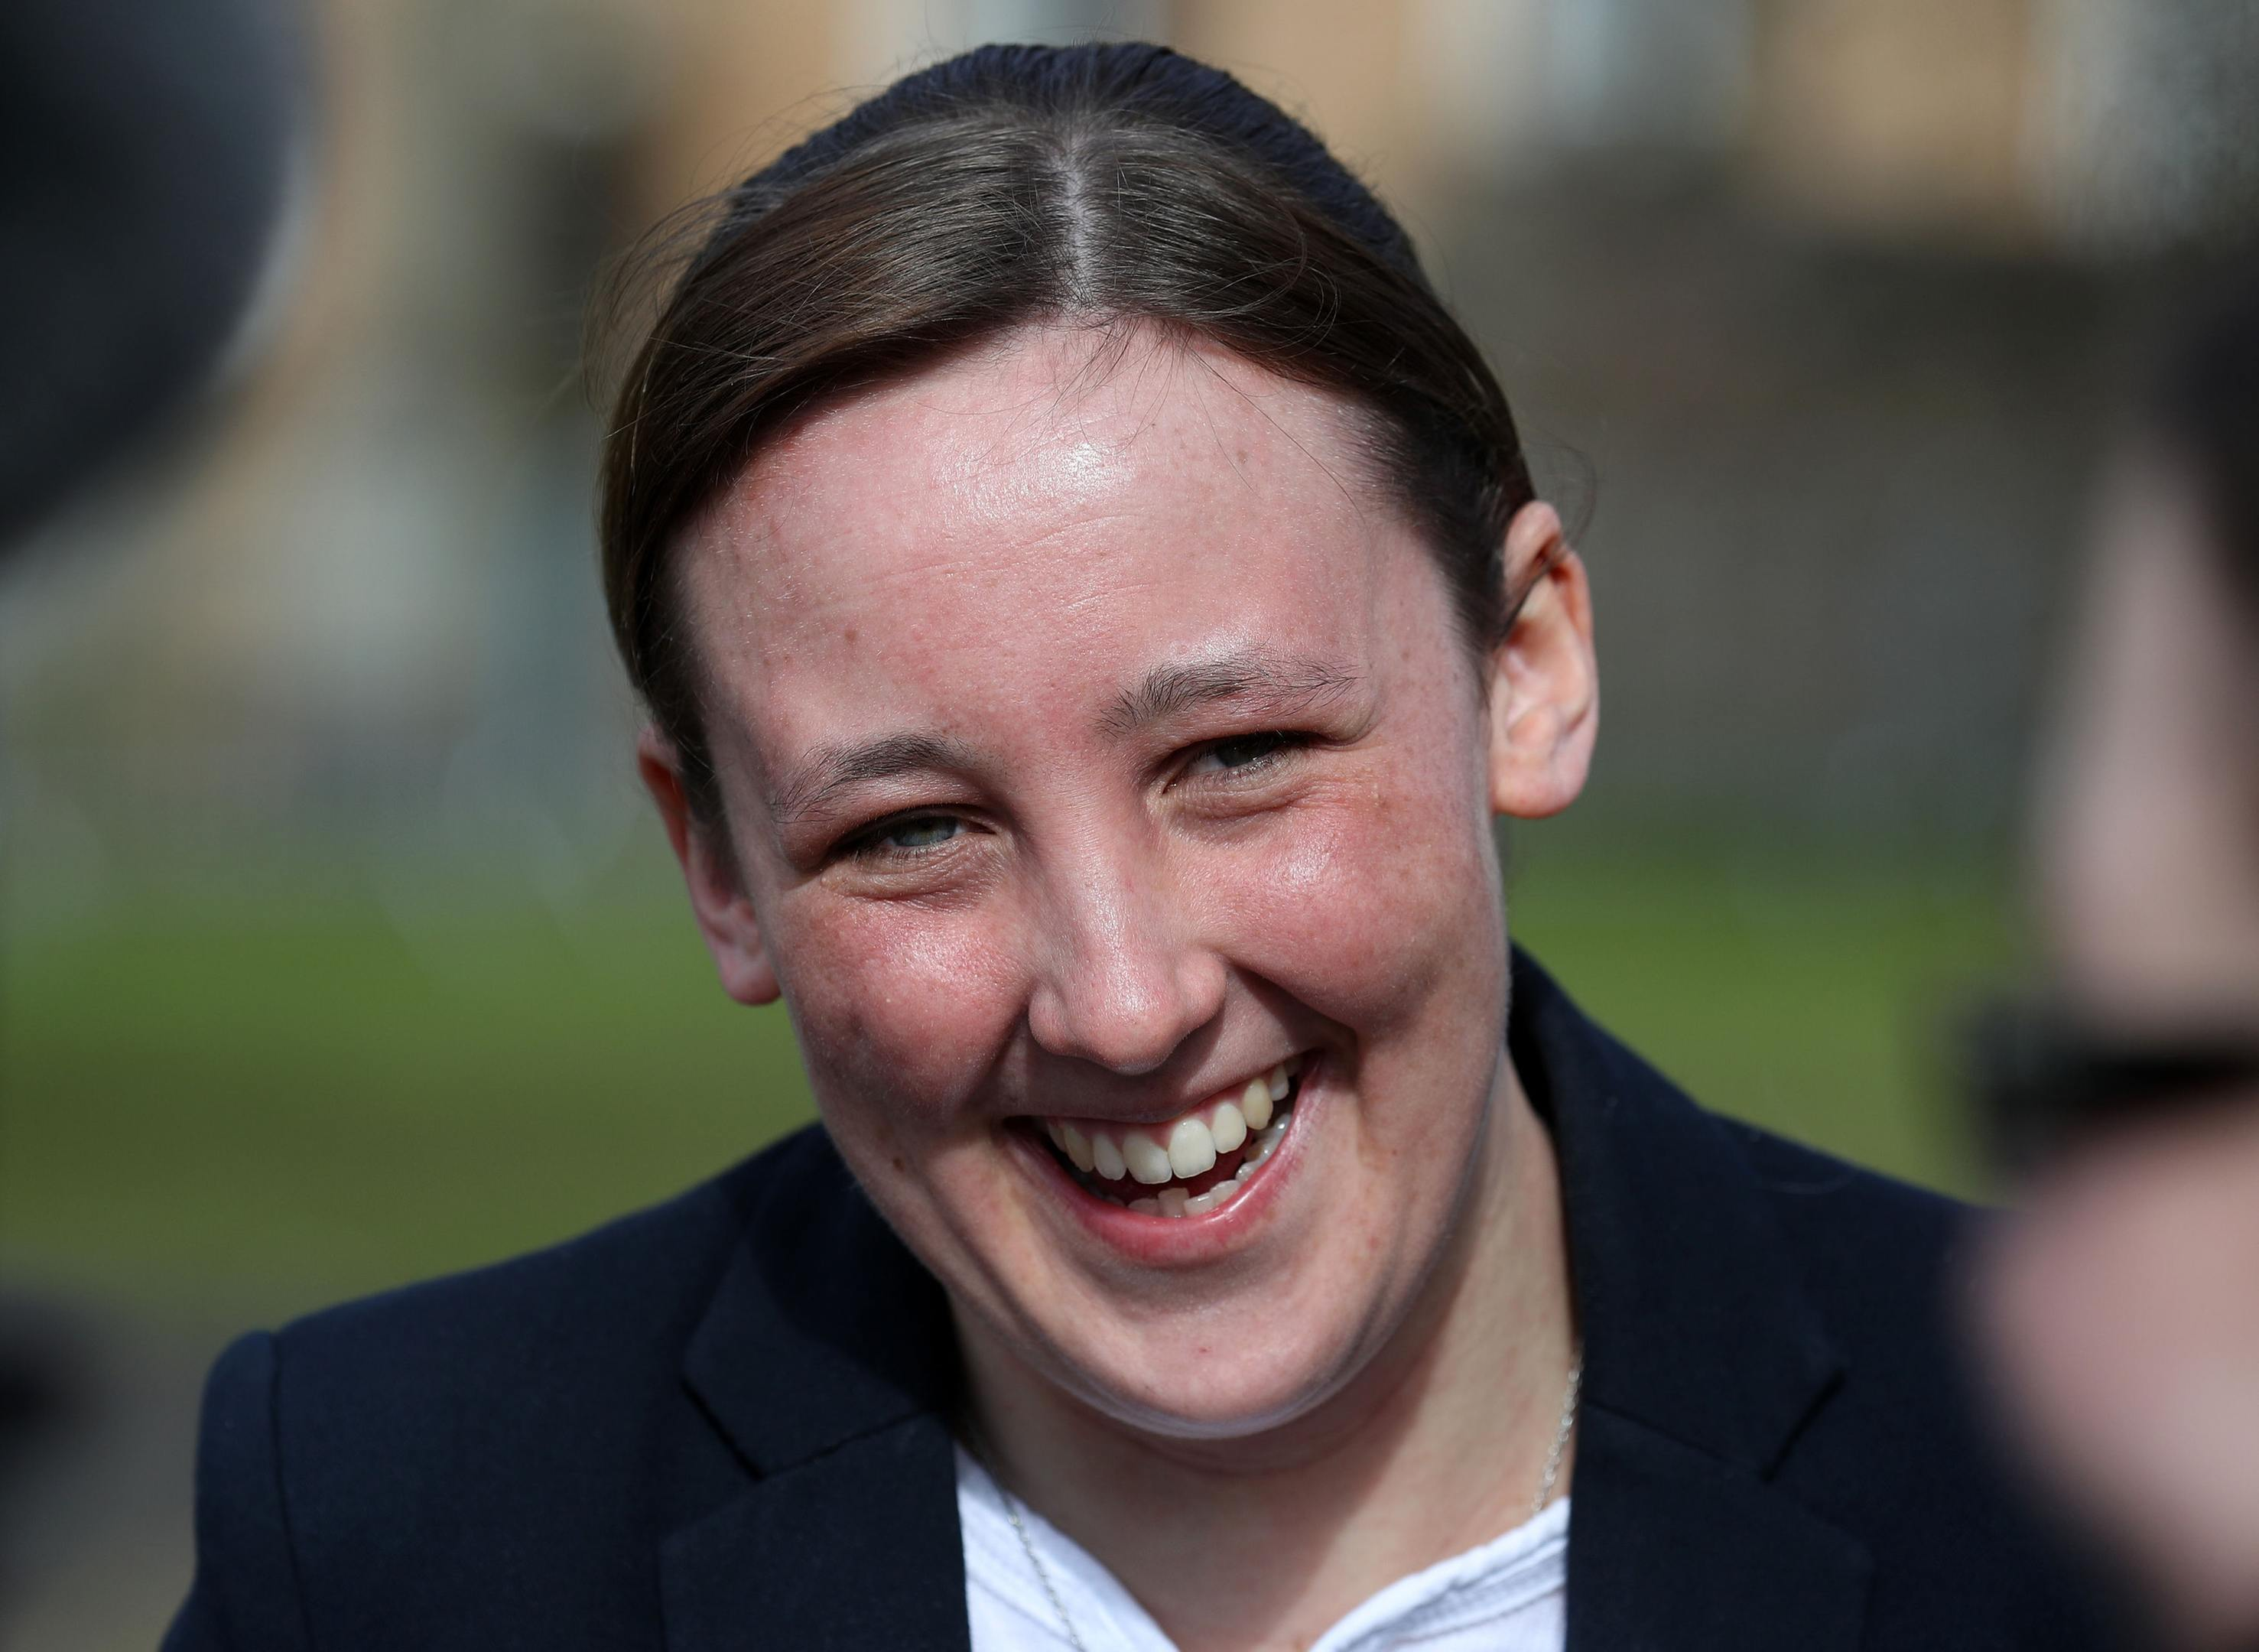 Mhairi Black has said Strictly Come Dancing should introduce same-sex dance partners (Andrew Milligan/PA)